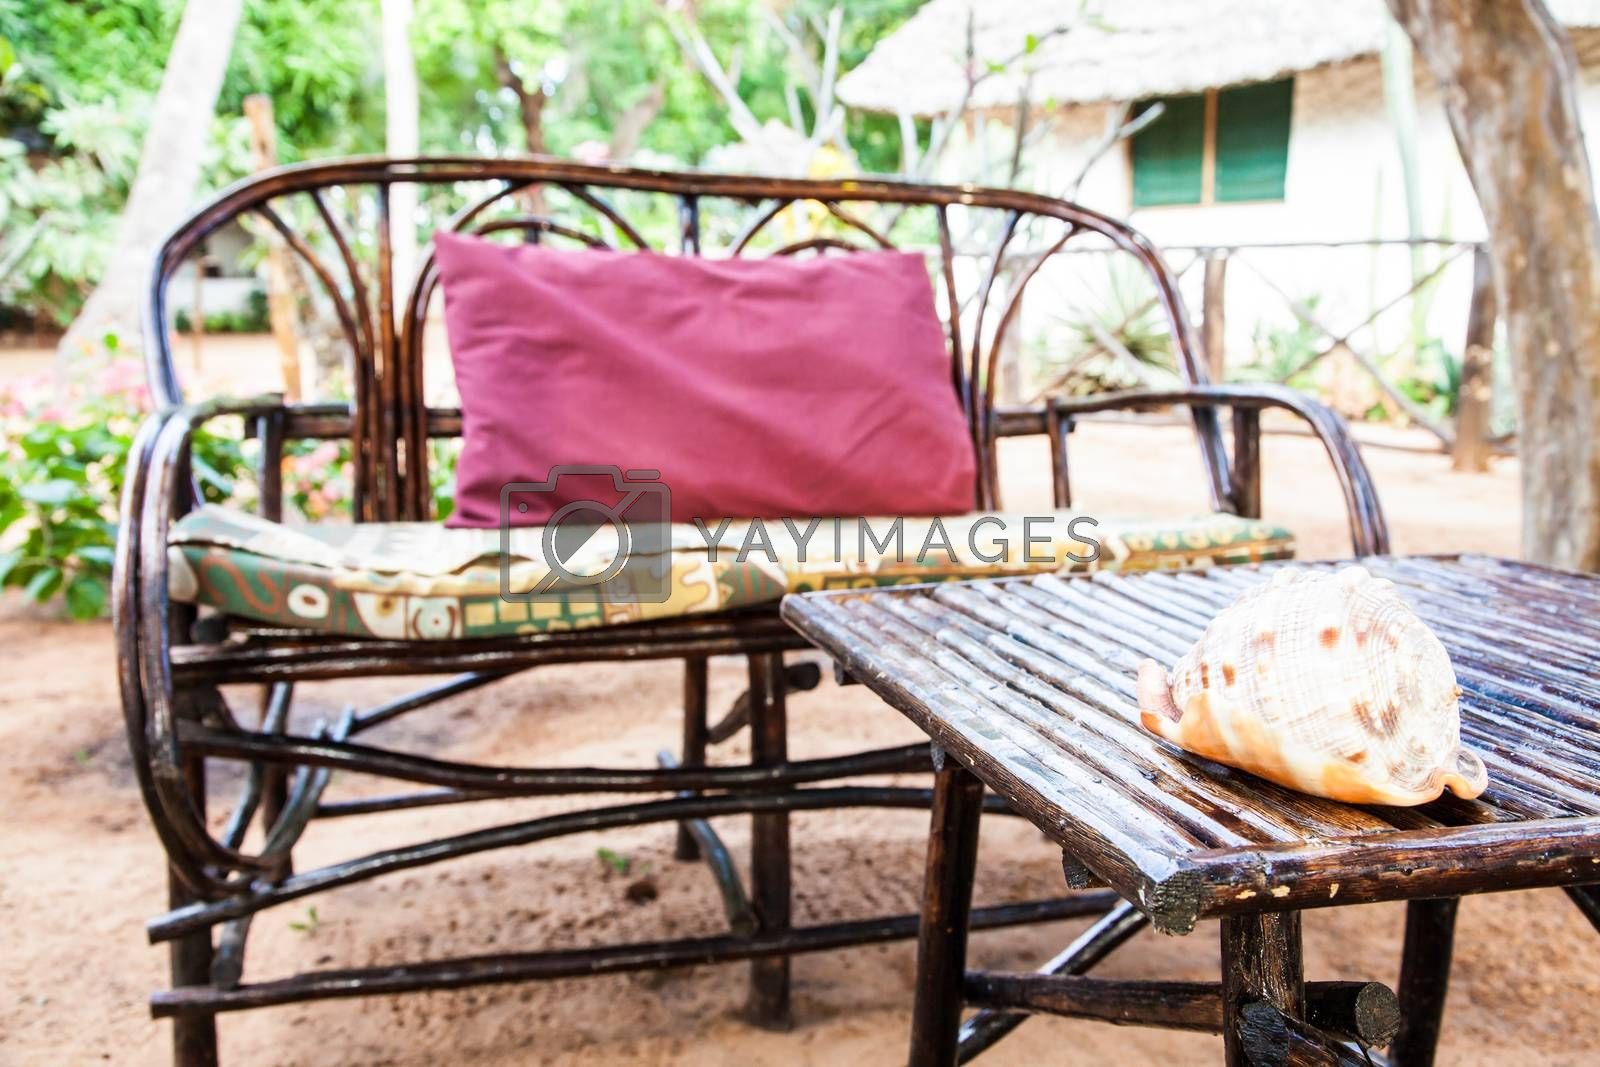 Royalty free image of Garden Furniture by Perseomedusa